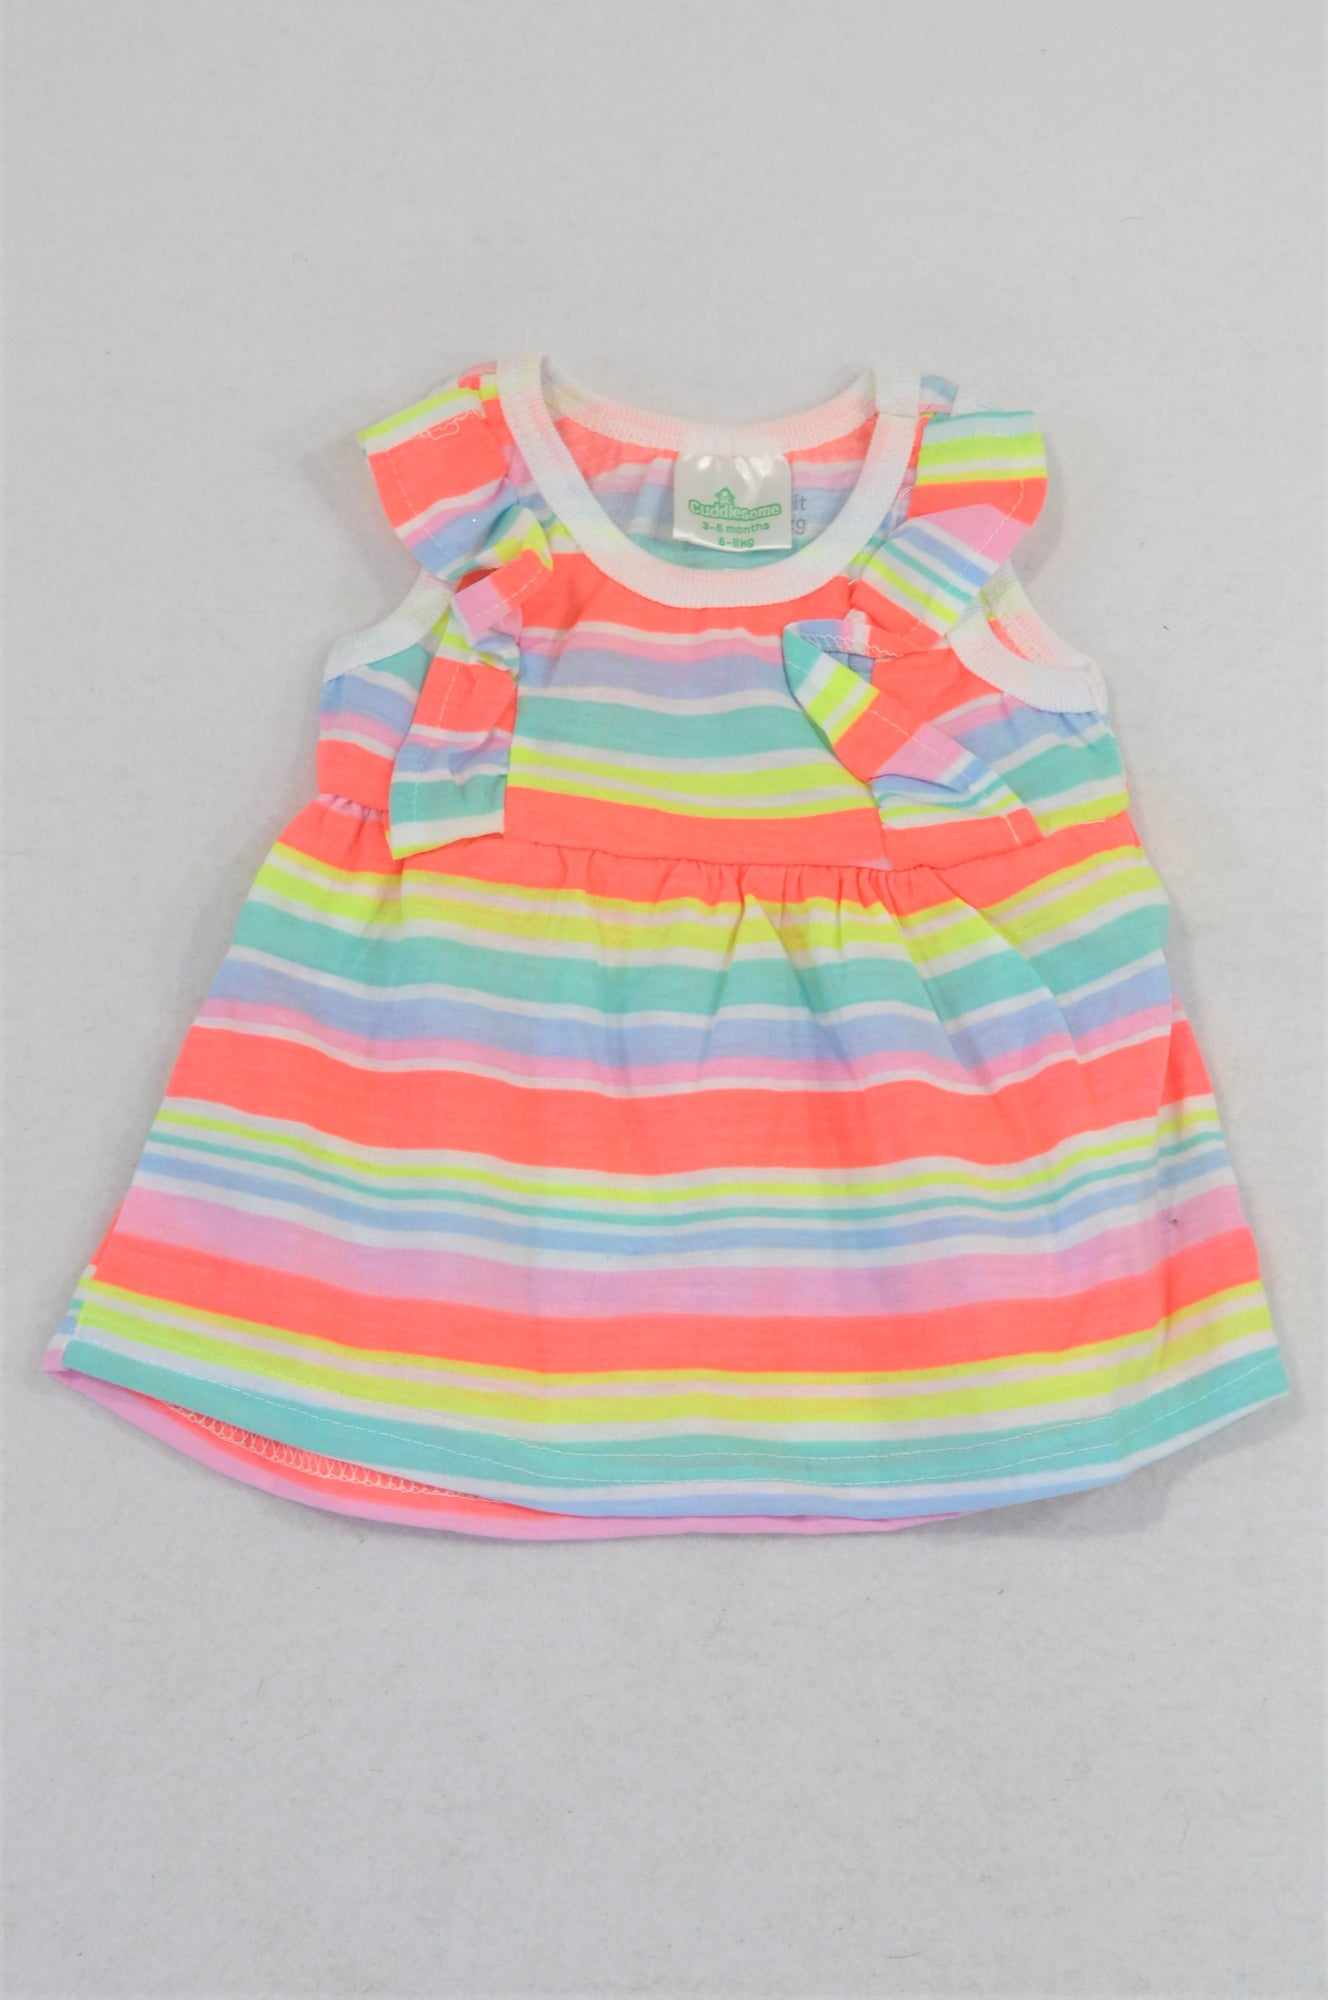 Pep Lumo Orange & Yellow Stripe Frill Dress Girls 3-6 months